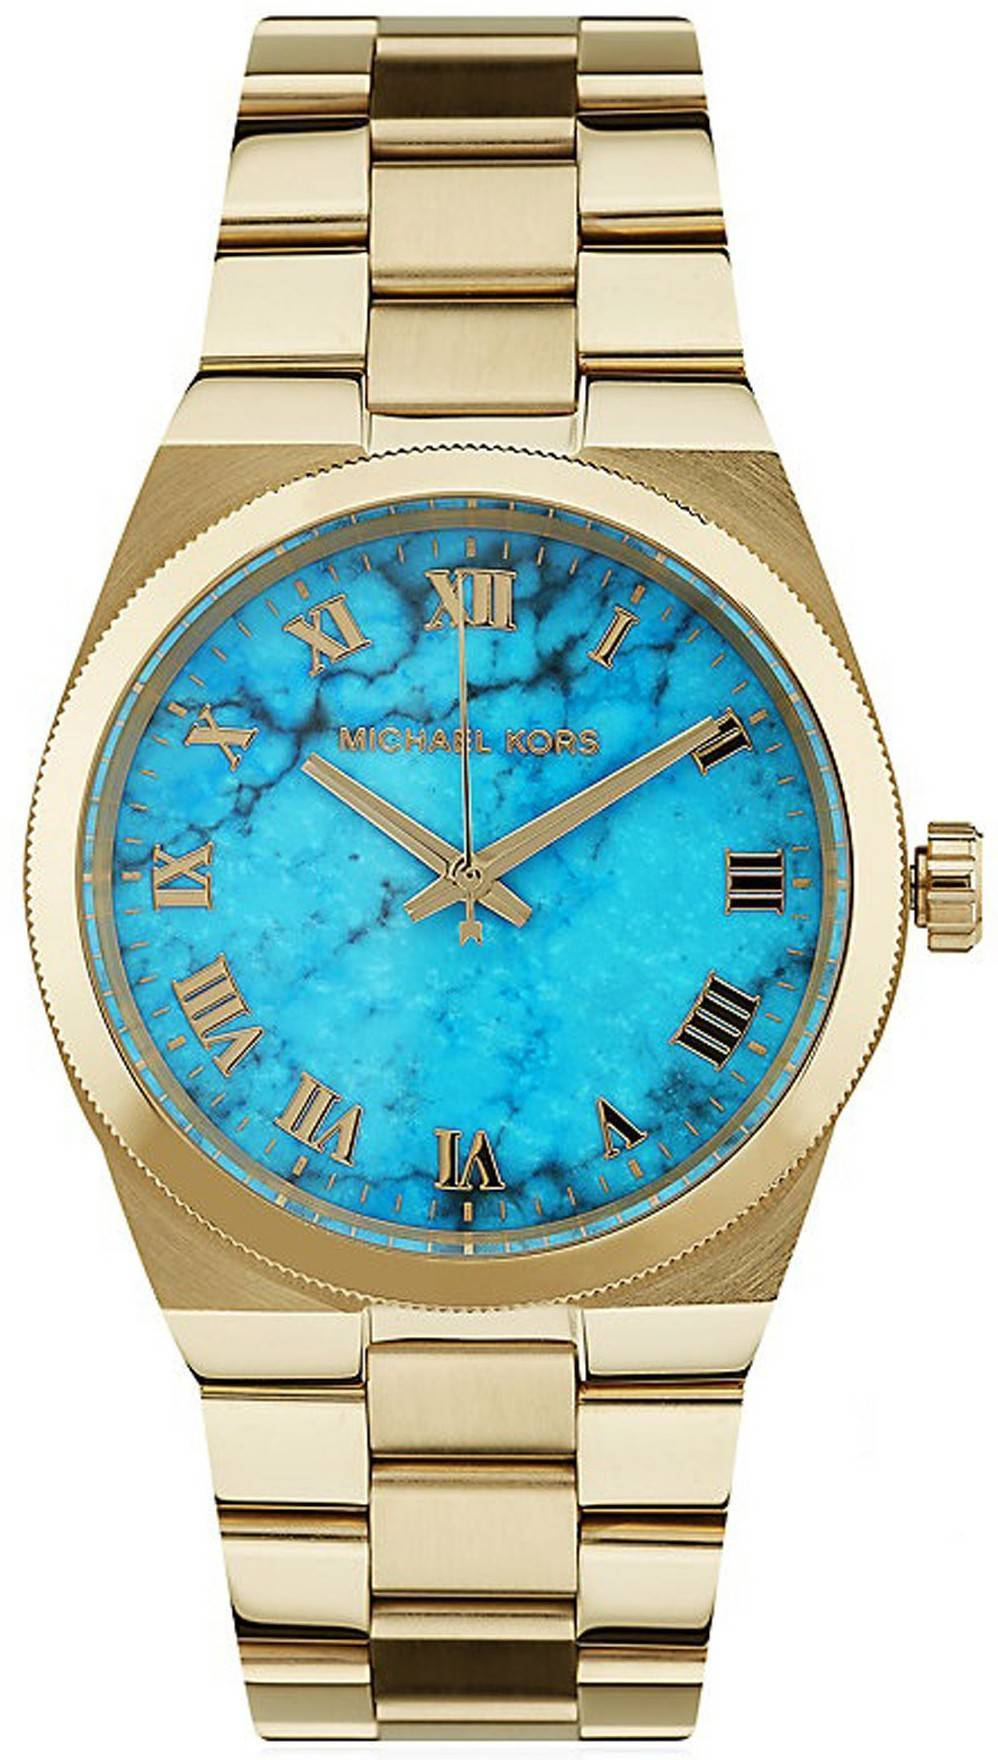 Michael Kors Channing Turquoise Dial MK5894 Womens Watch Singapore 81e87c5be6